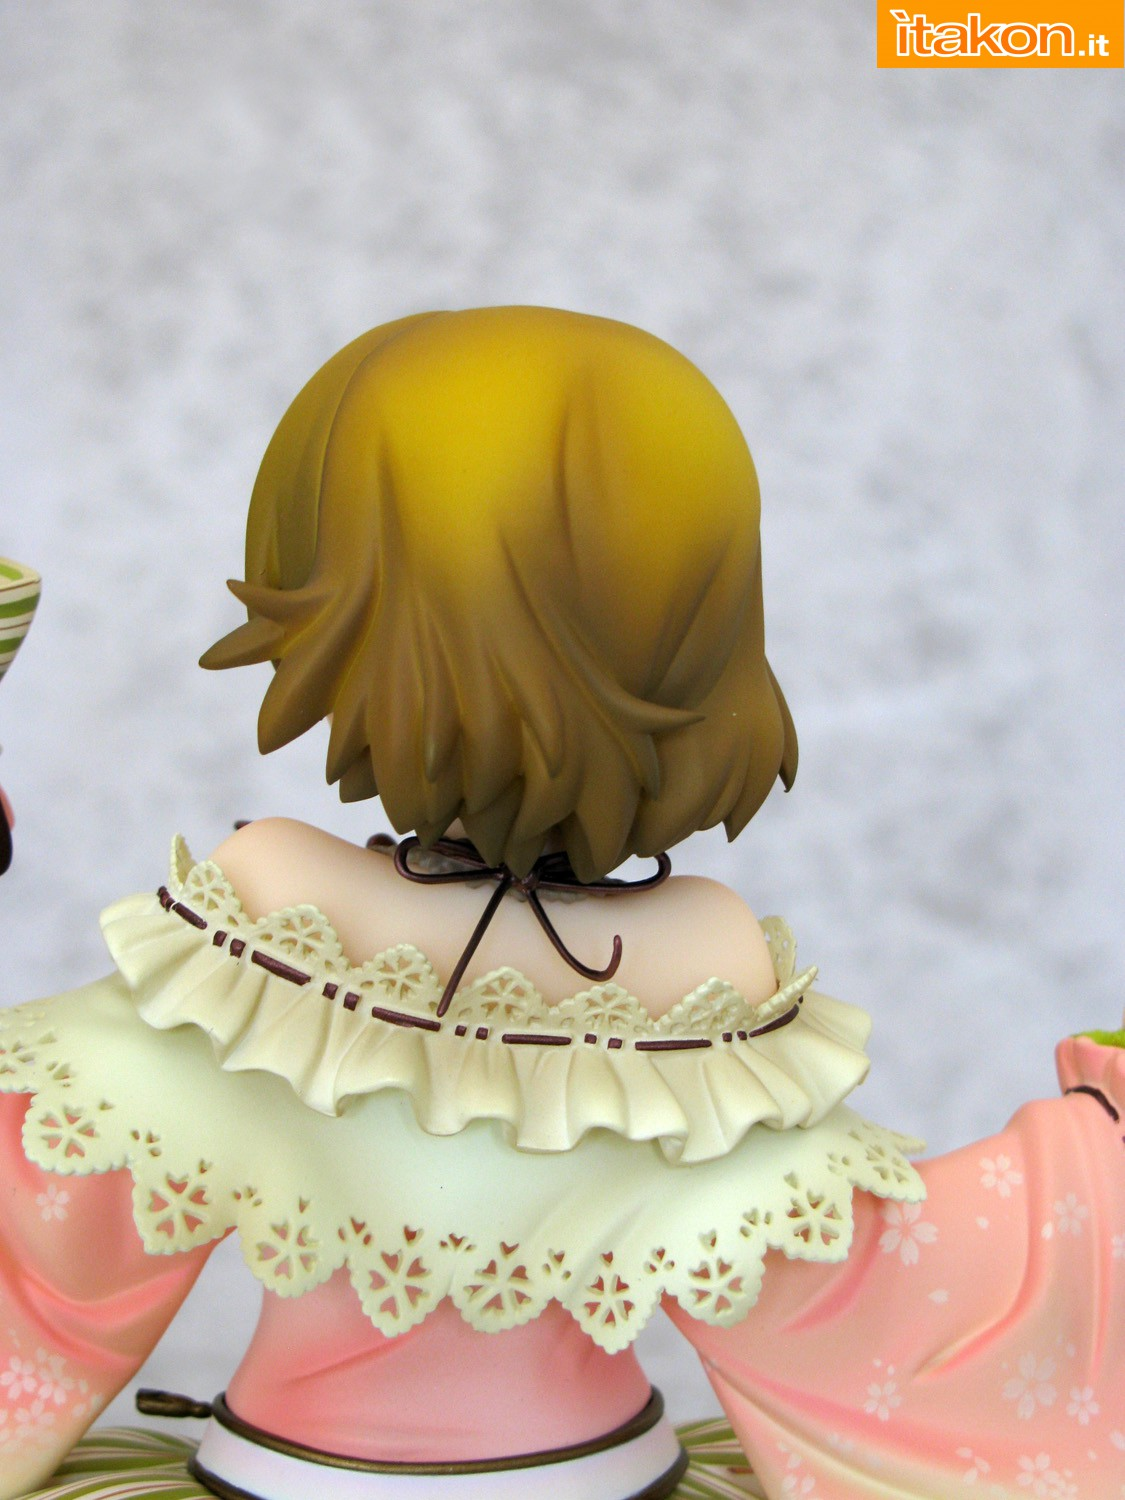 Link a 014 Hanayo Koizkumi March Love Live ALTER recensione